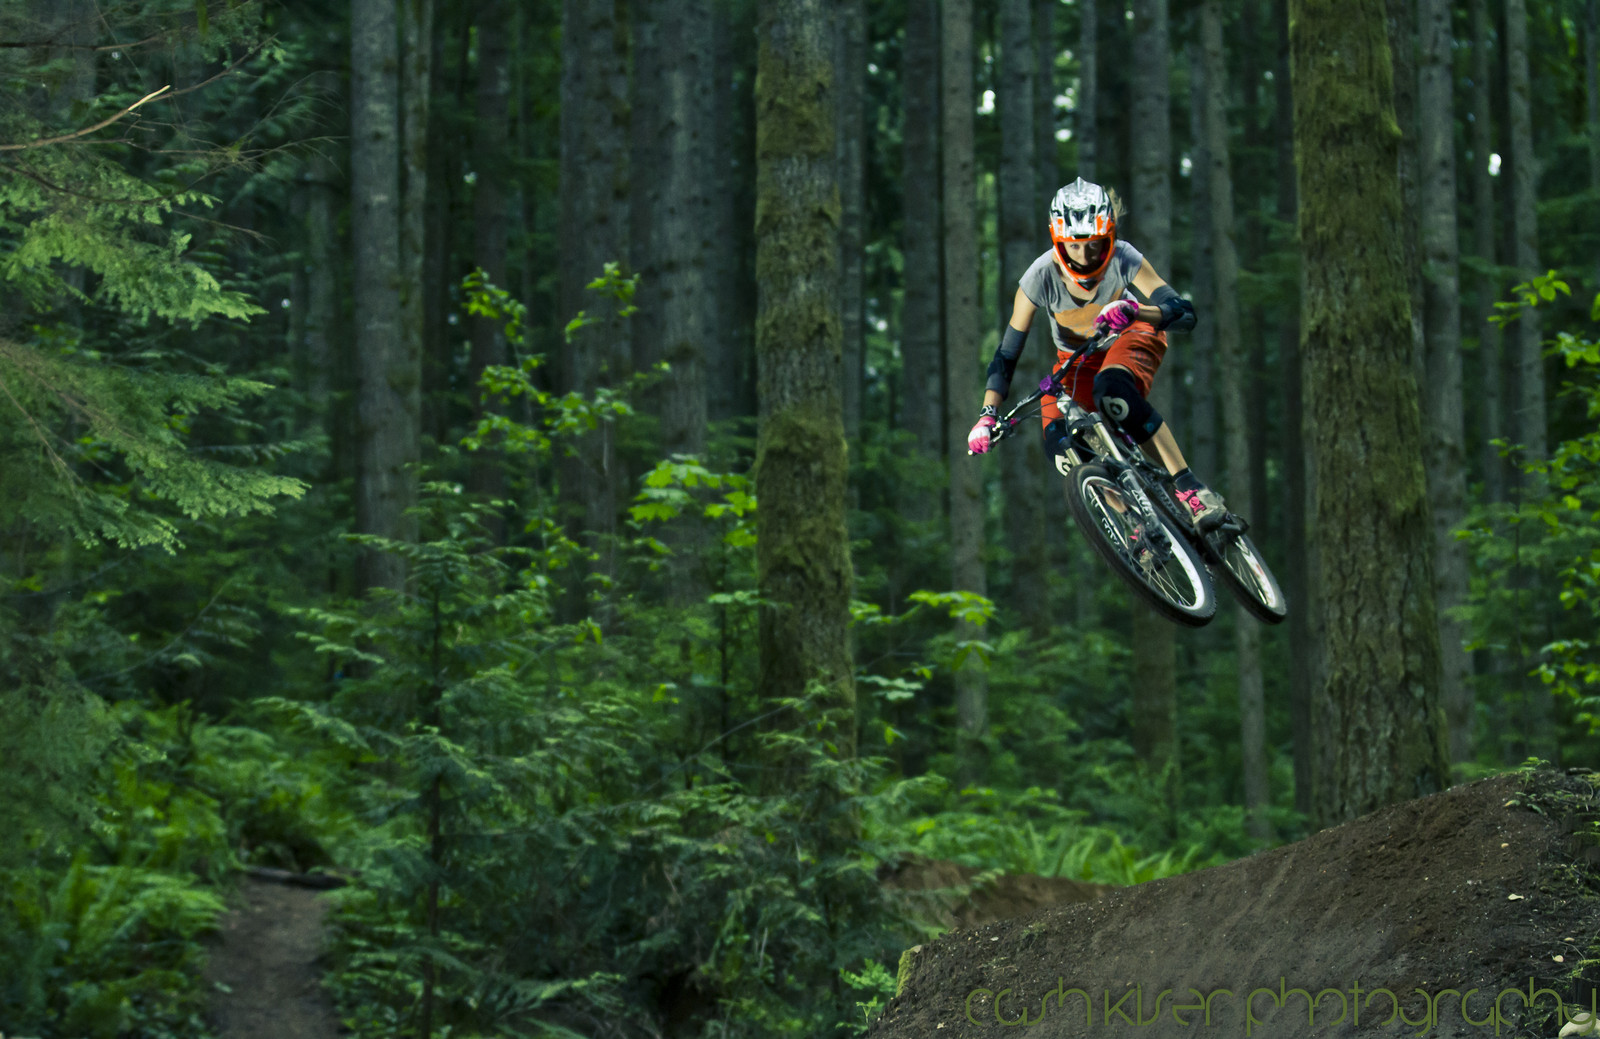 Cash Kiser Pic-120602 - Duthie Sesh-102 - Sweetlines - Mountain Biking Pictures - Vital MTB